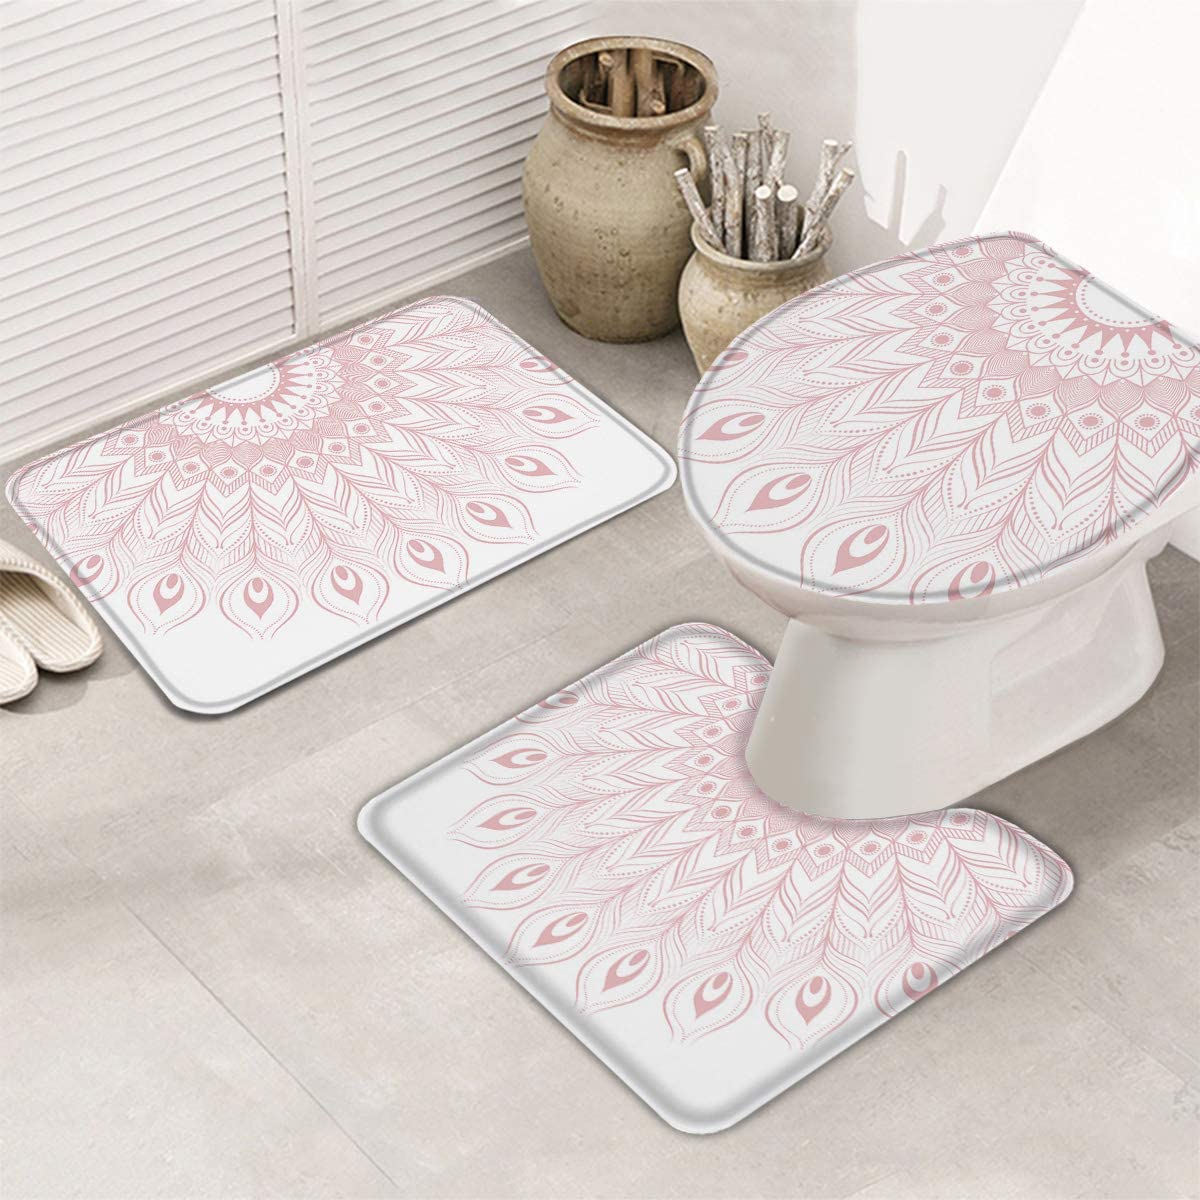 Fangship 3 New arrival Piece Bathroom Rugs Set Bath Mats Limited Special Price Sl Non for